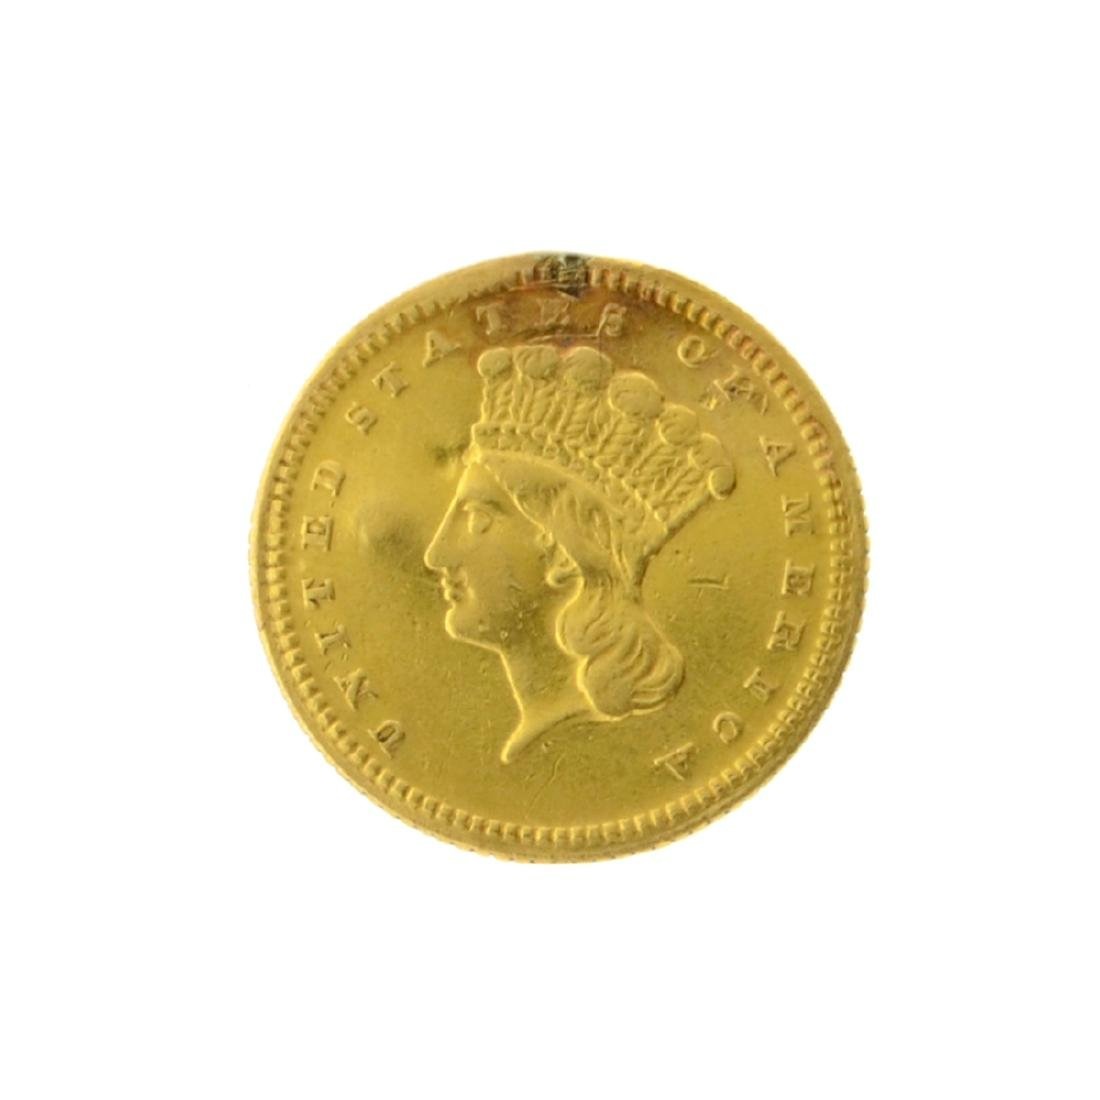 1868 $1 Large Indian Head Gold Coin